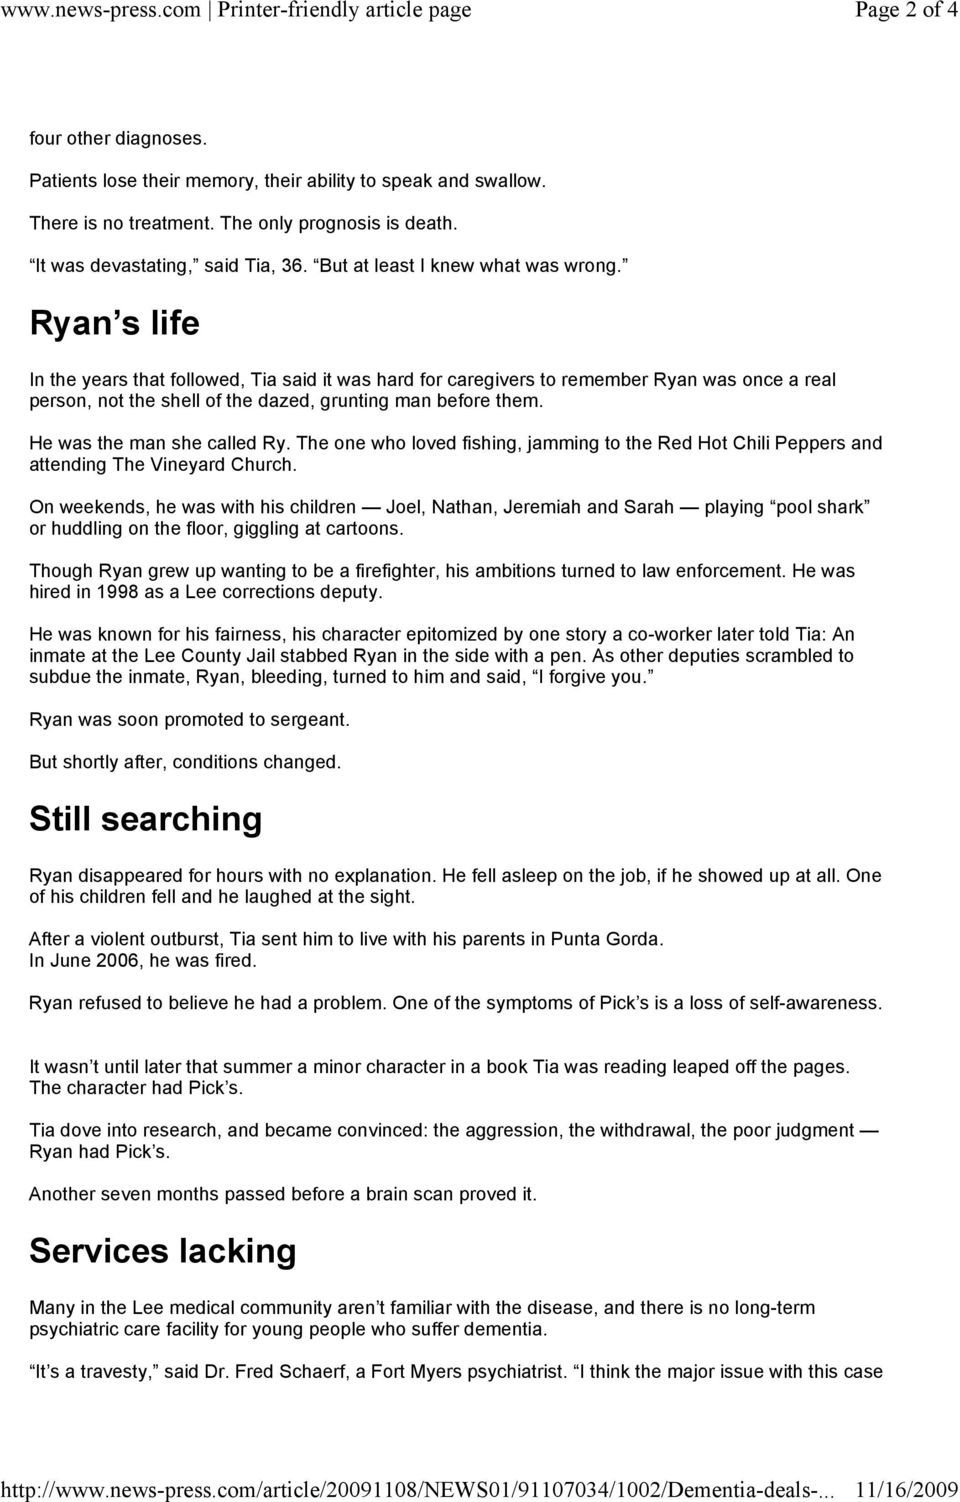 Ryan s life In the years that followed, Tia said it was hard for caregivers to remember Ryan was once a real person, not the shell of the dazed, grunting man before them. He was the man she called Ry.